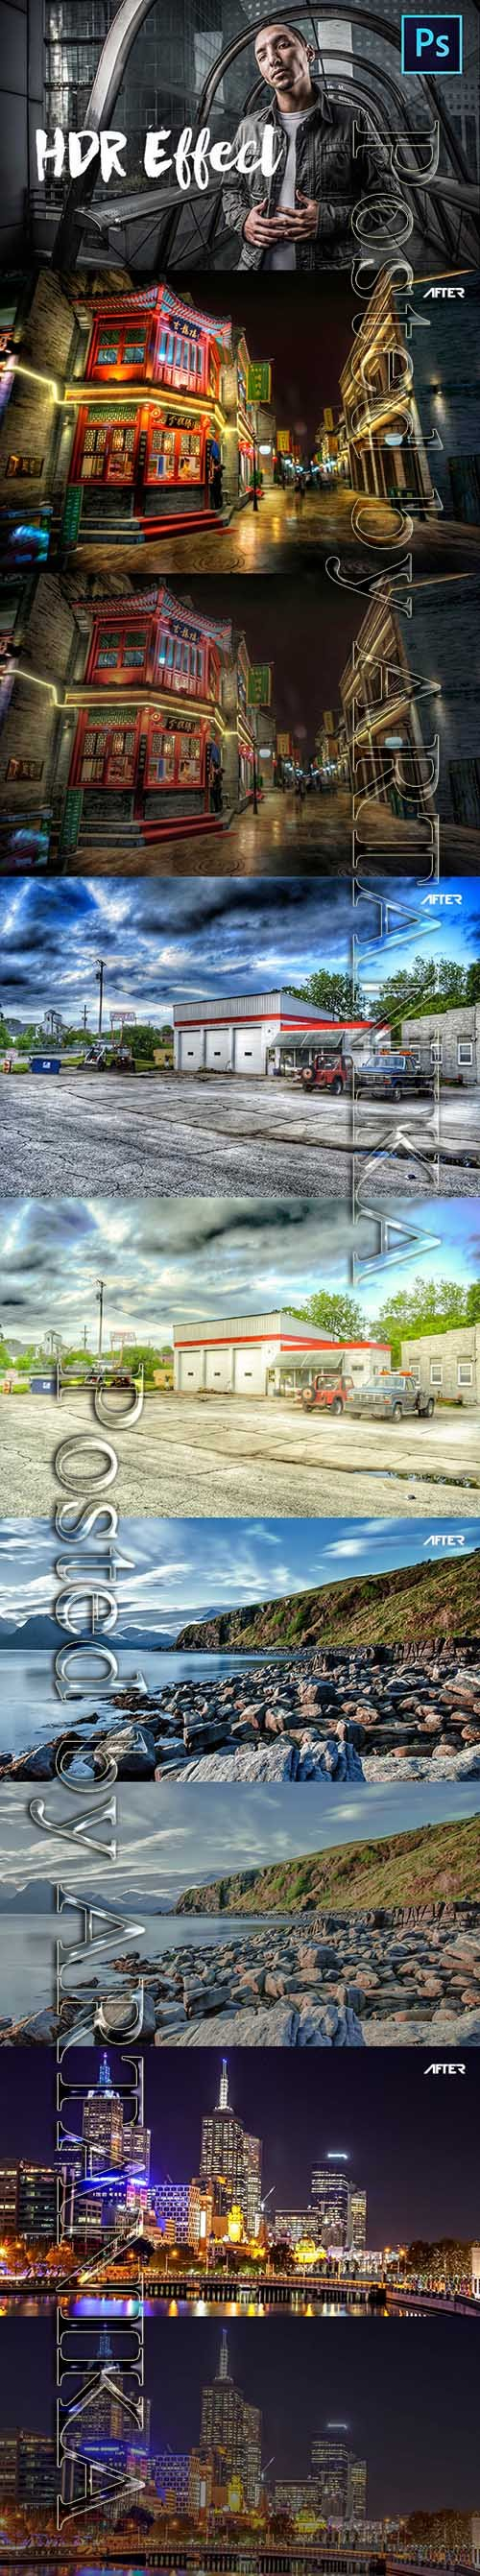 HDR Photoshop Actions | Photo Effects 21110521